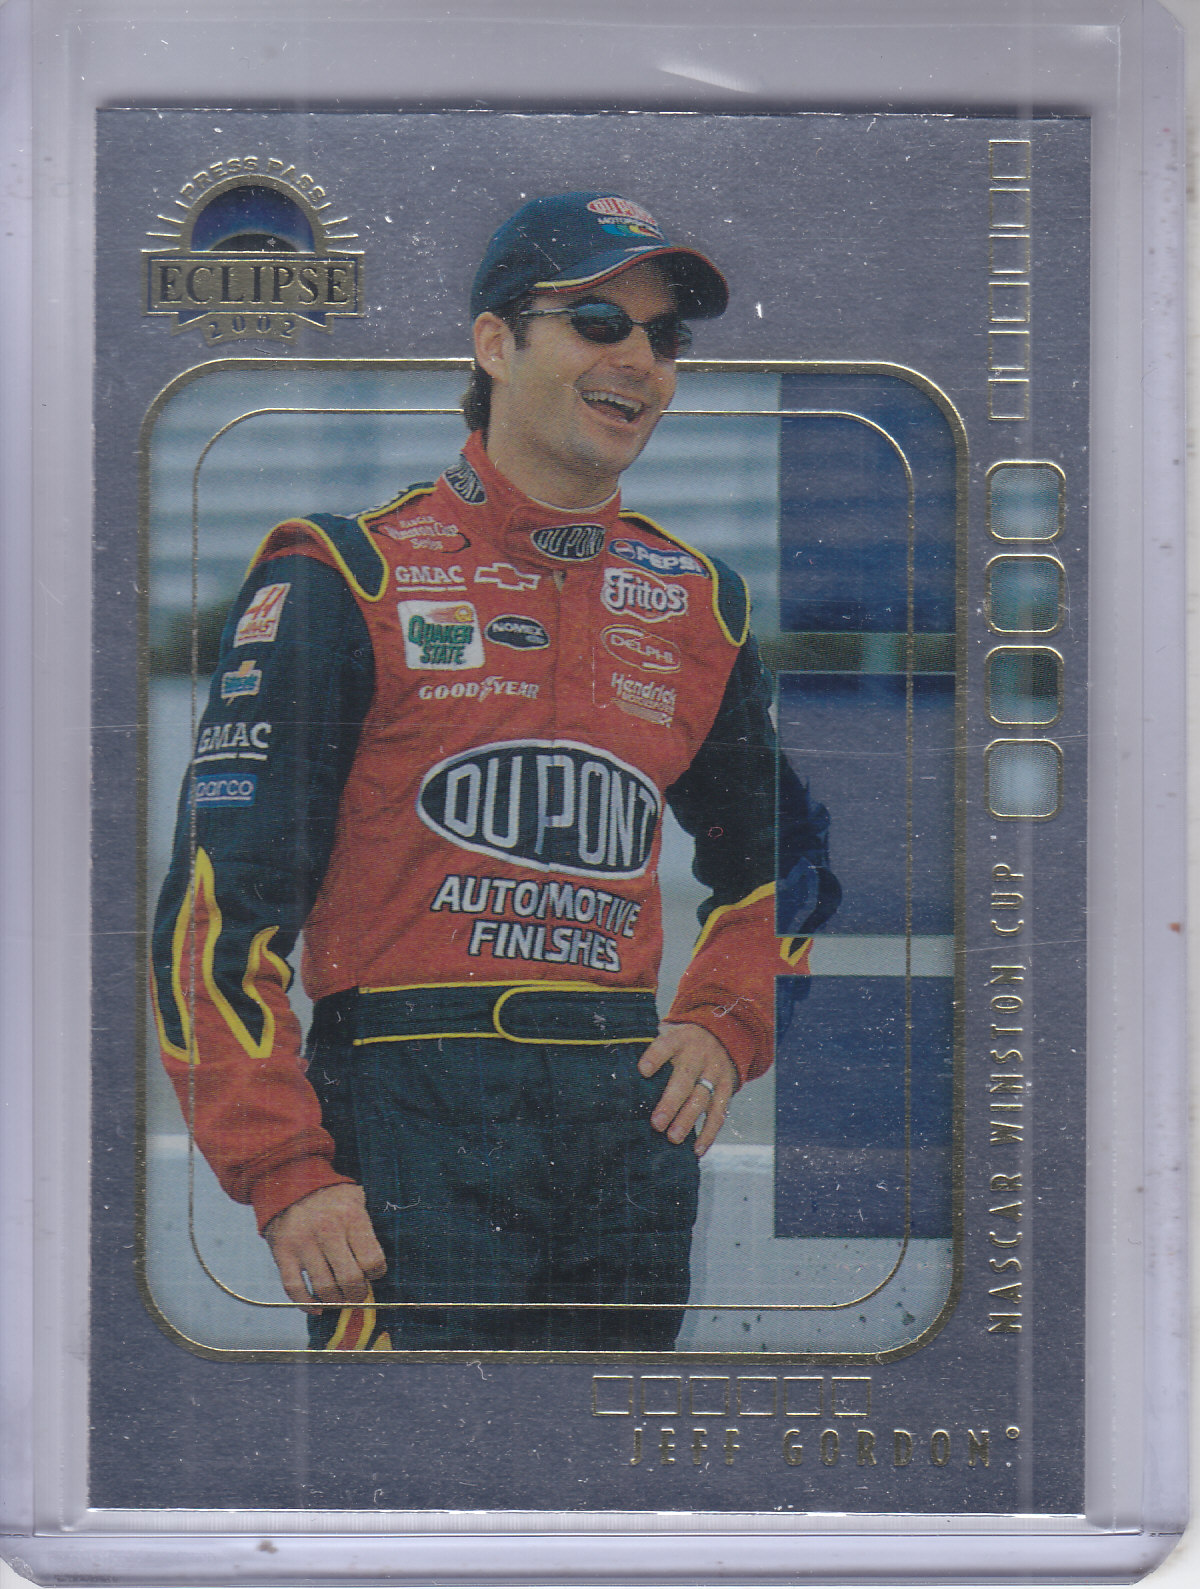 2002 Press Pass Eclipse Solar Eclipse #S1 Jeff Gordon